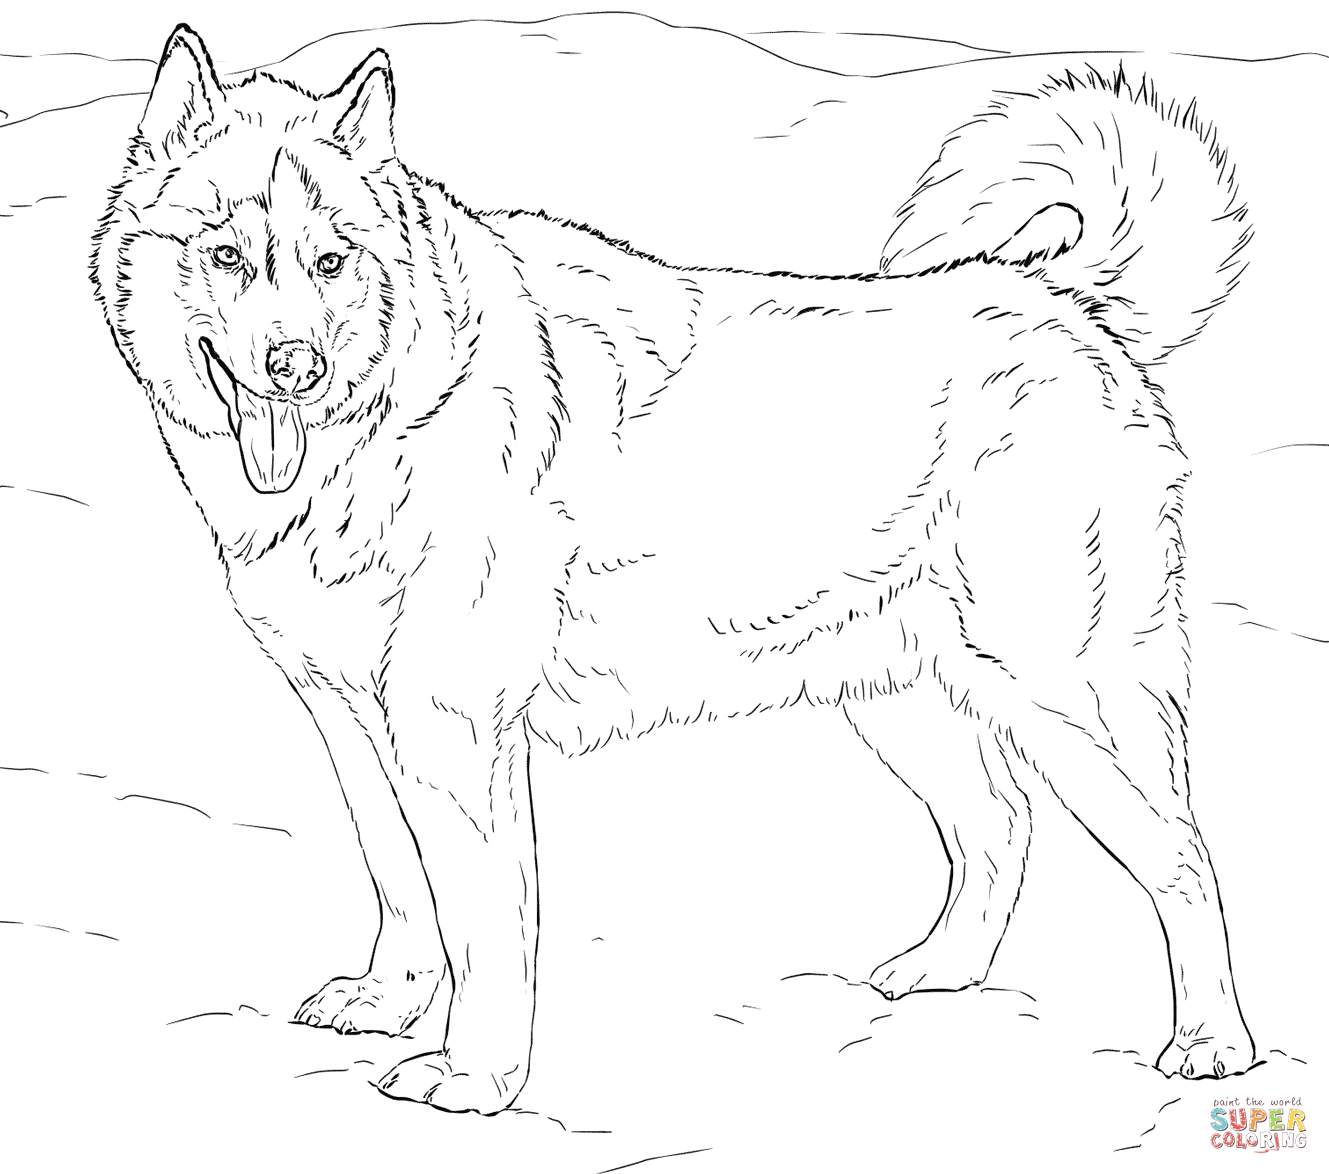 Husky Puppies Drawing at GetDrawings.com   Free for personal use ...